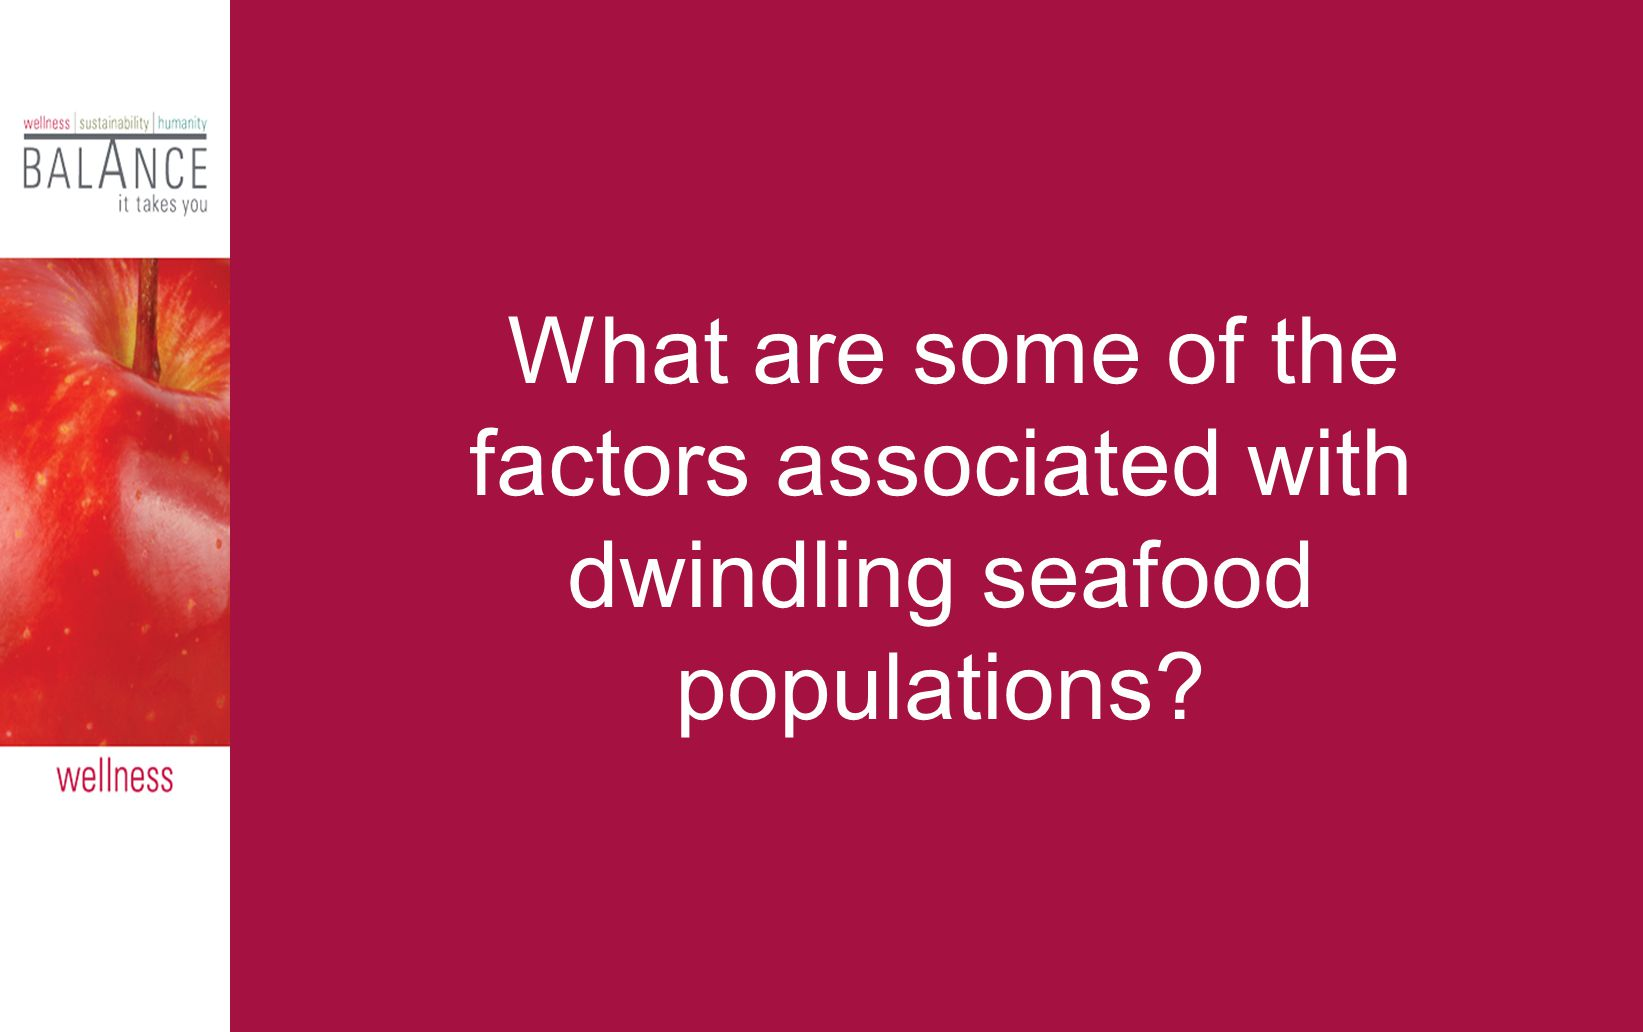 What are some of the factors associated with dwindling seafood populations